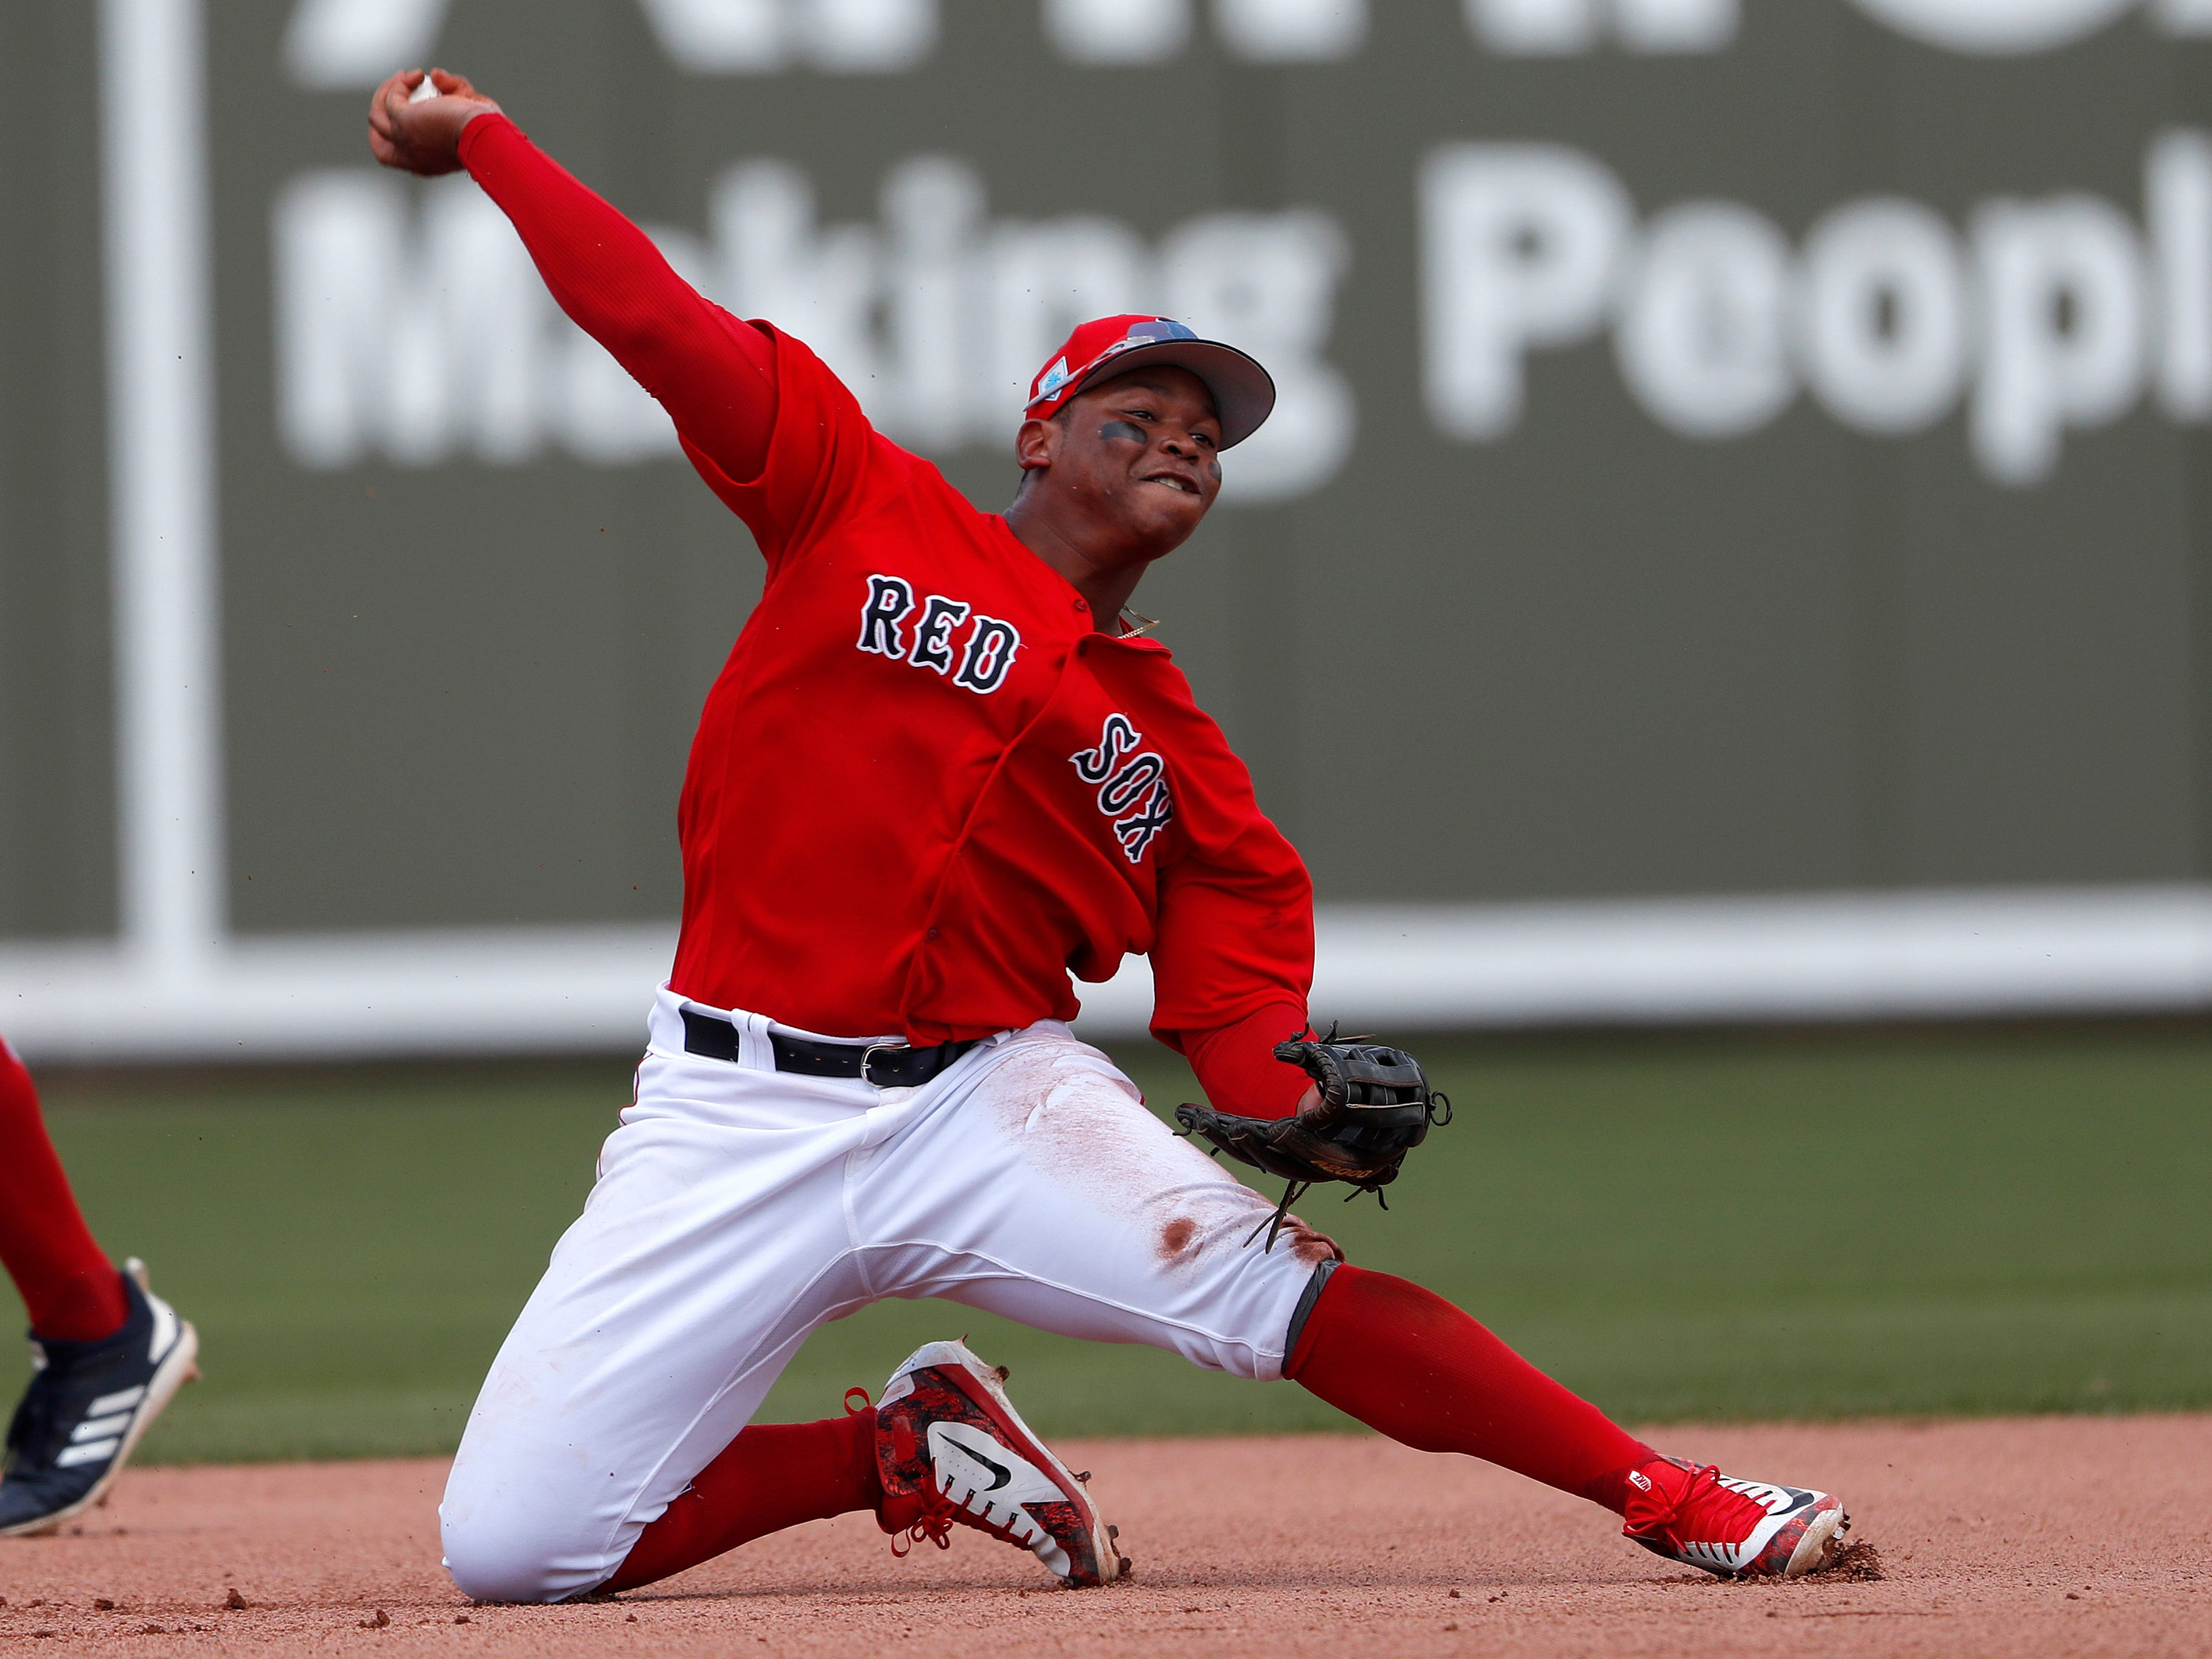 Boston Red Sox third baseman Rafael Devers throws out Detroit Tigers' Niko Goodrum at first base in the fifth inning.